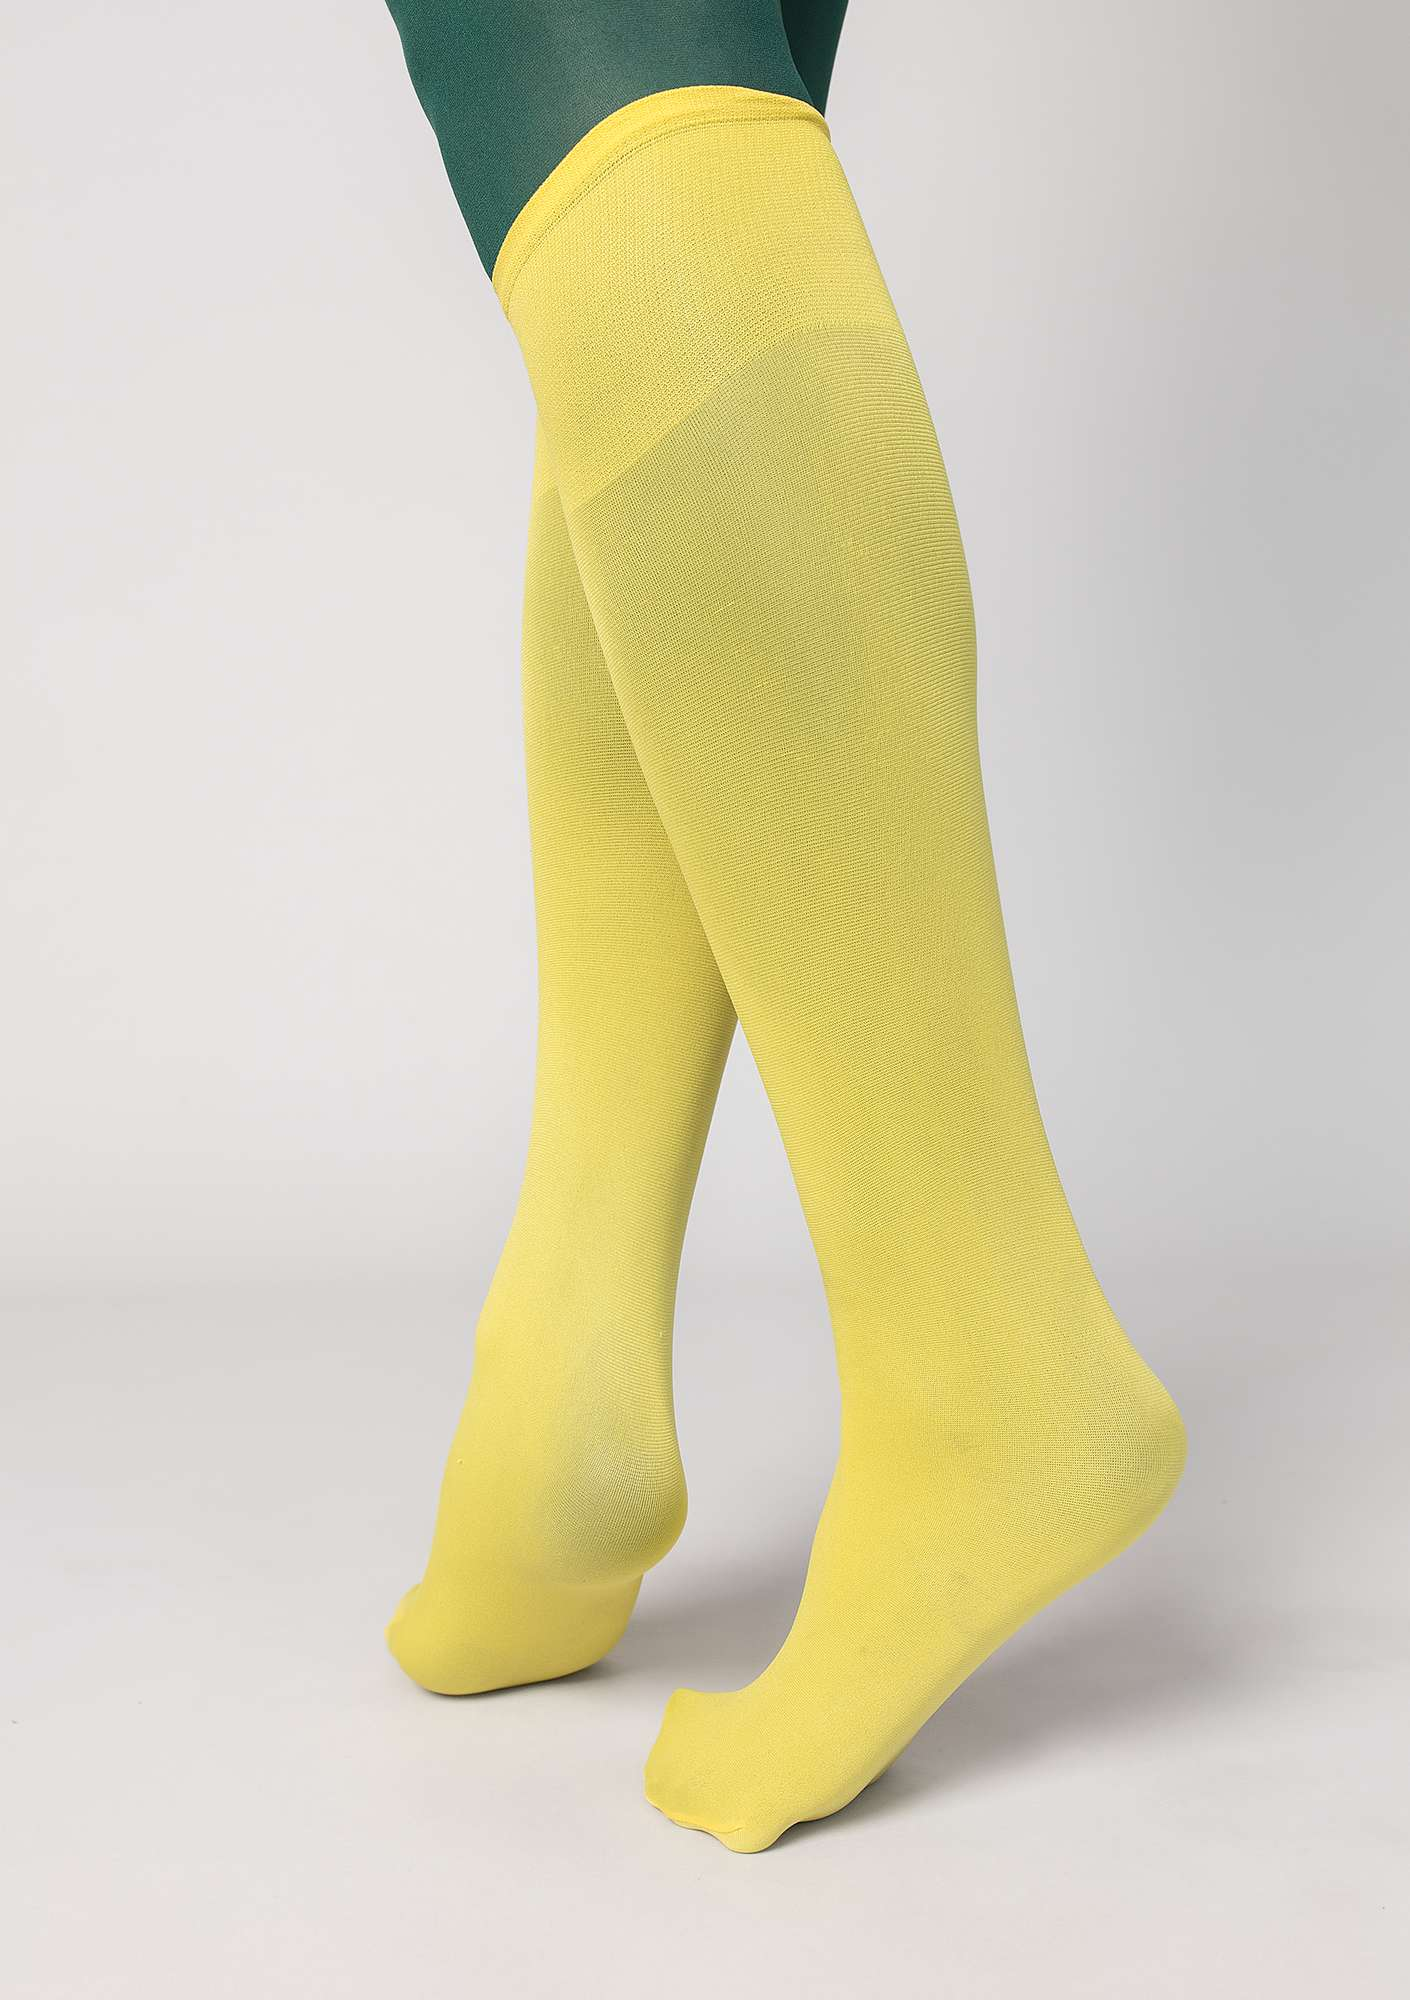 Solid-colour knee-highs